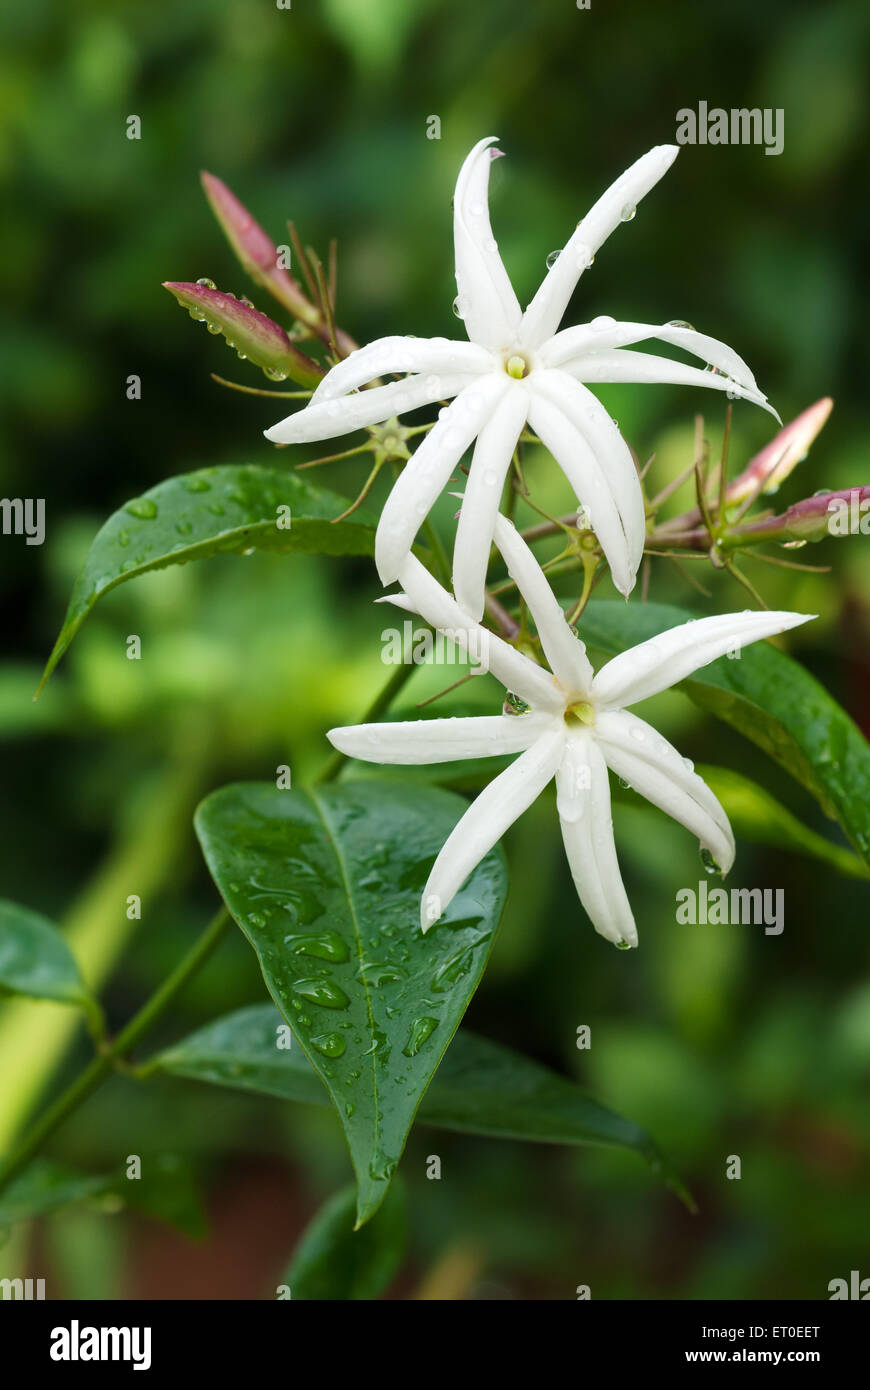 jasminum grandiflorum flower - Stock Image